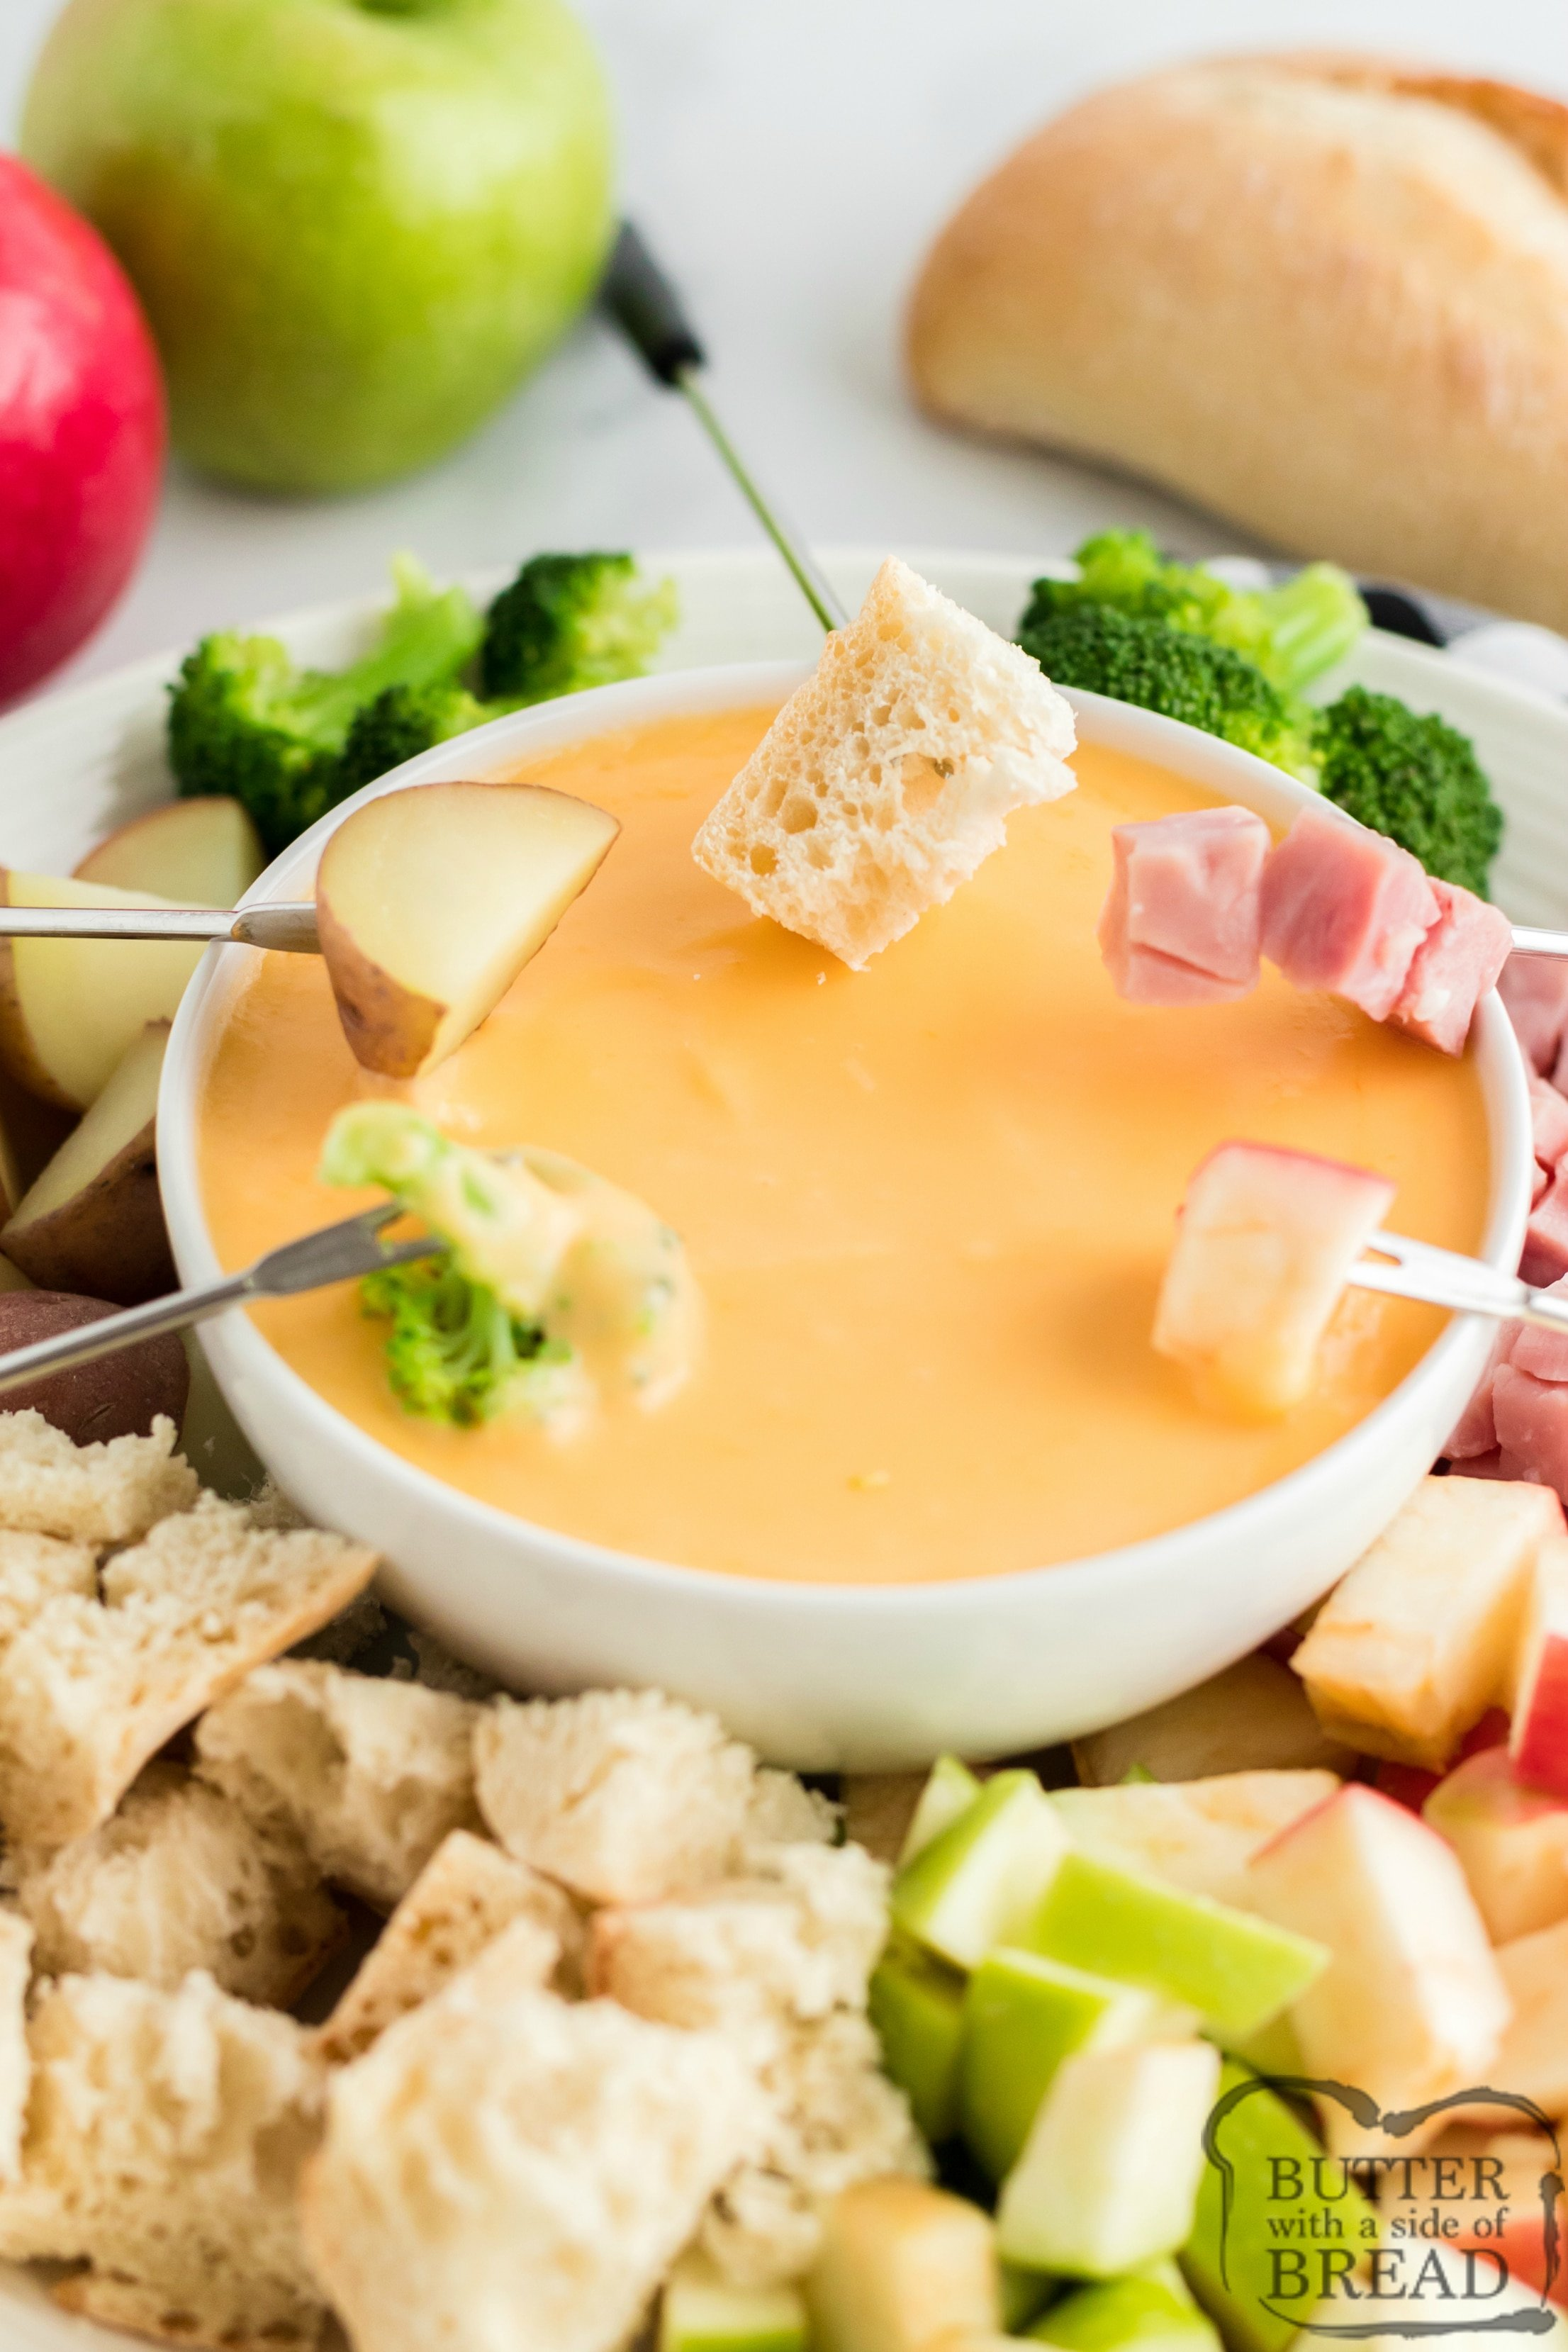 Dipping bread and vegetables in fondue